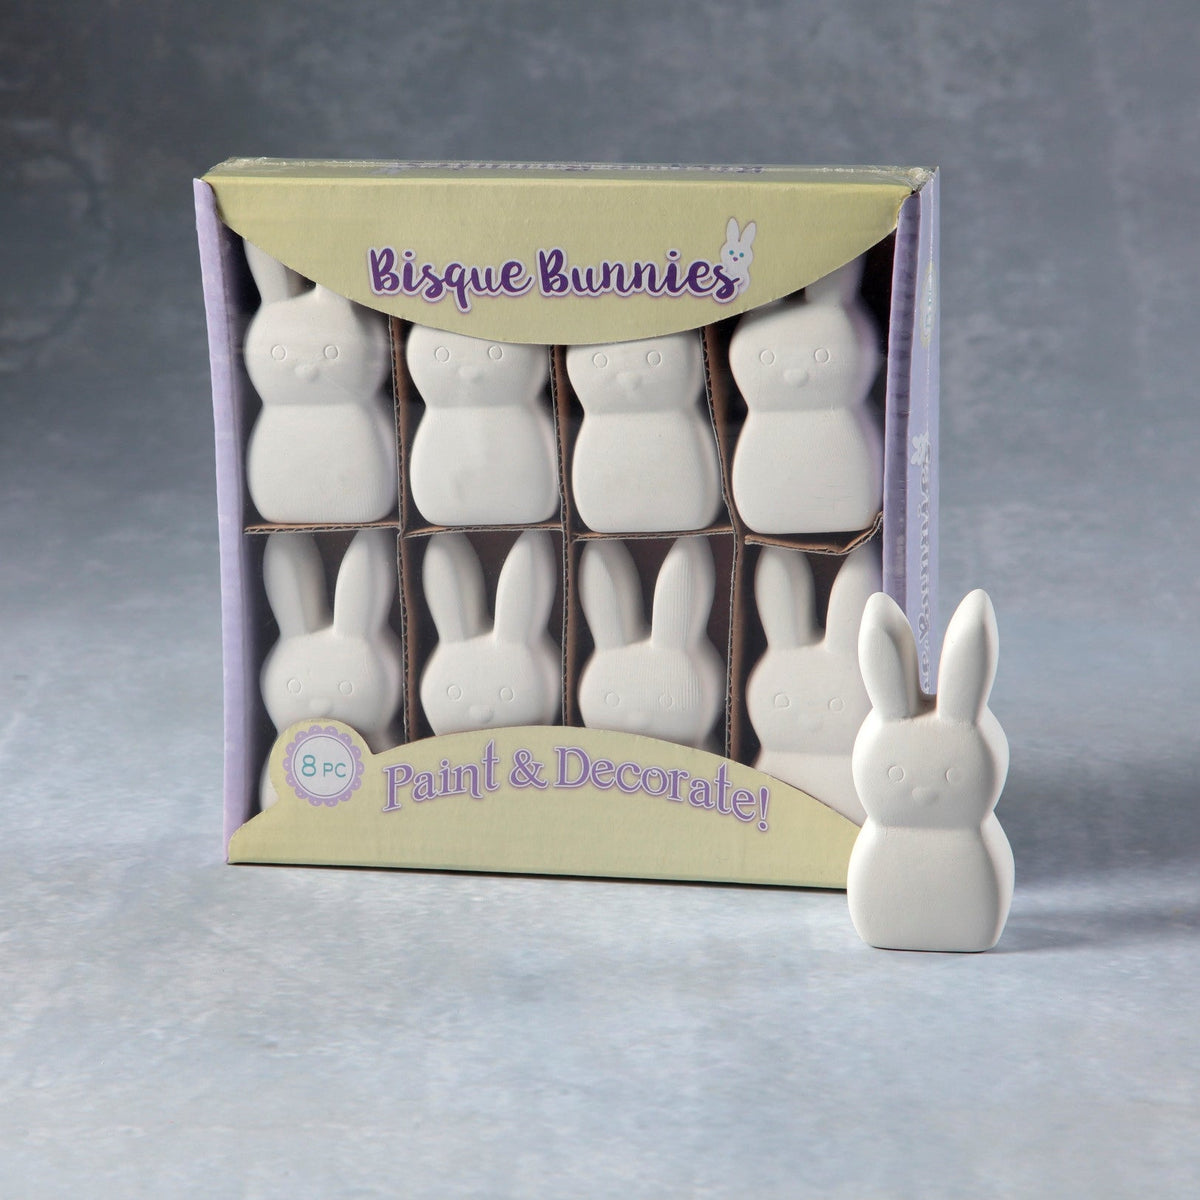 Duncan - 37210 Bisque Bunnies 8 pack - Sounding Stone